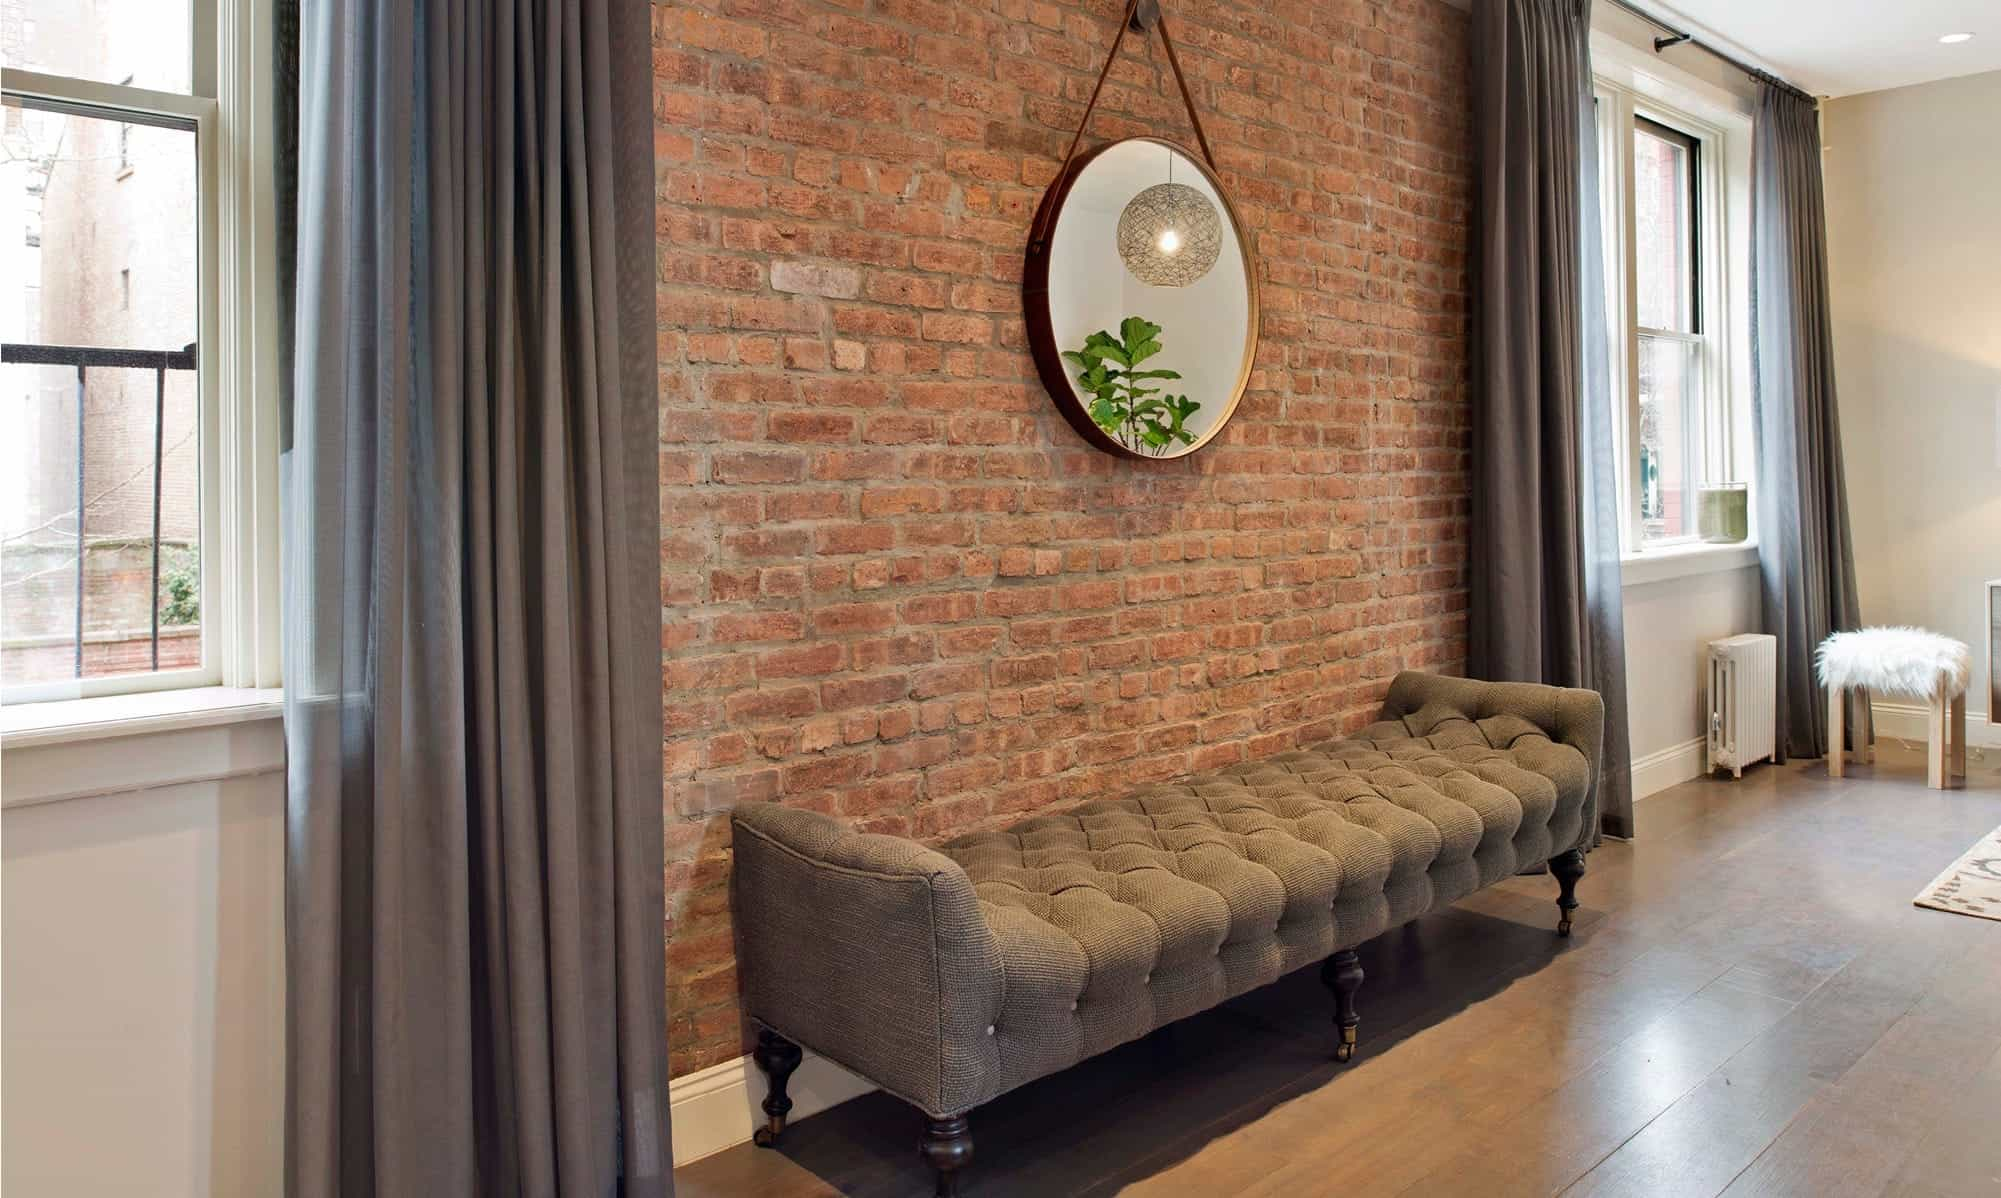 Urban Living Room With Brick Accent Wall (Image 28 of 30)